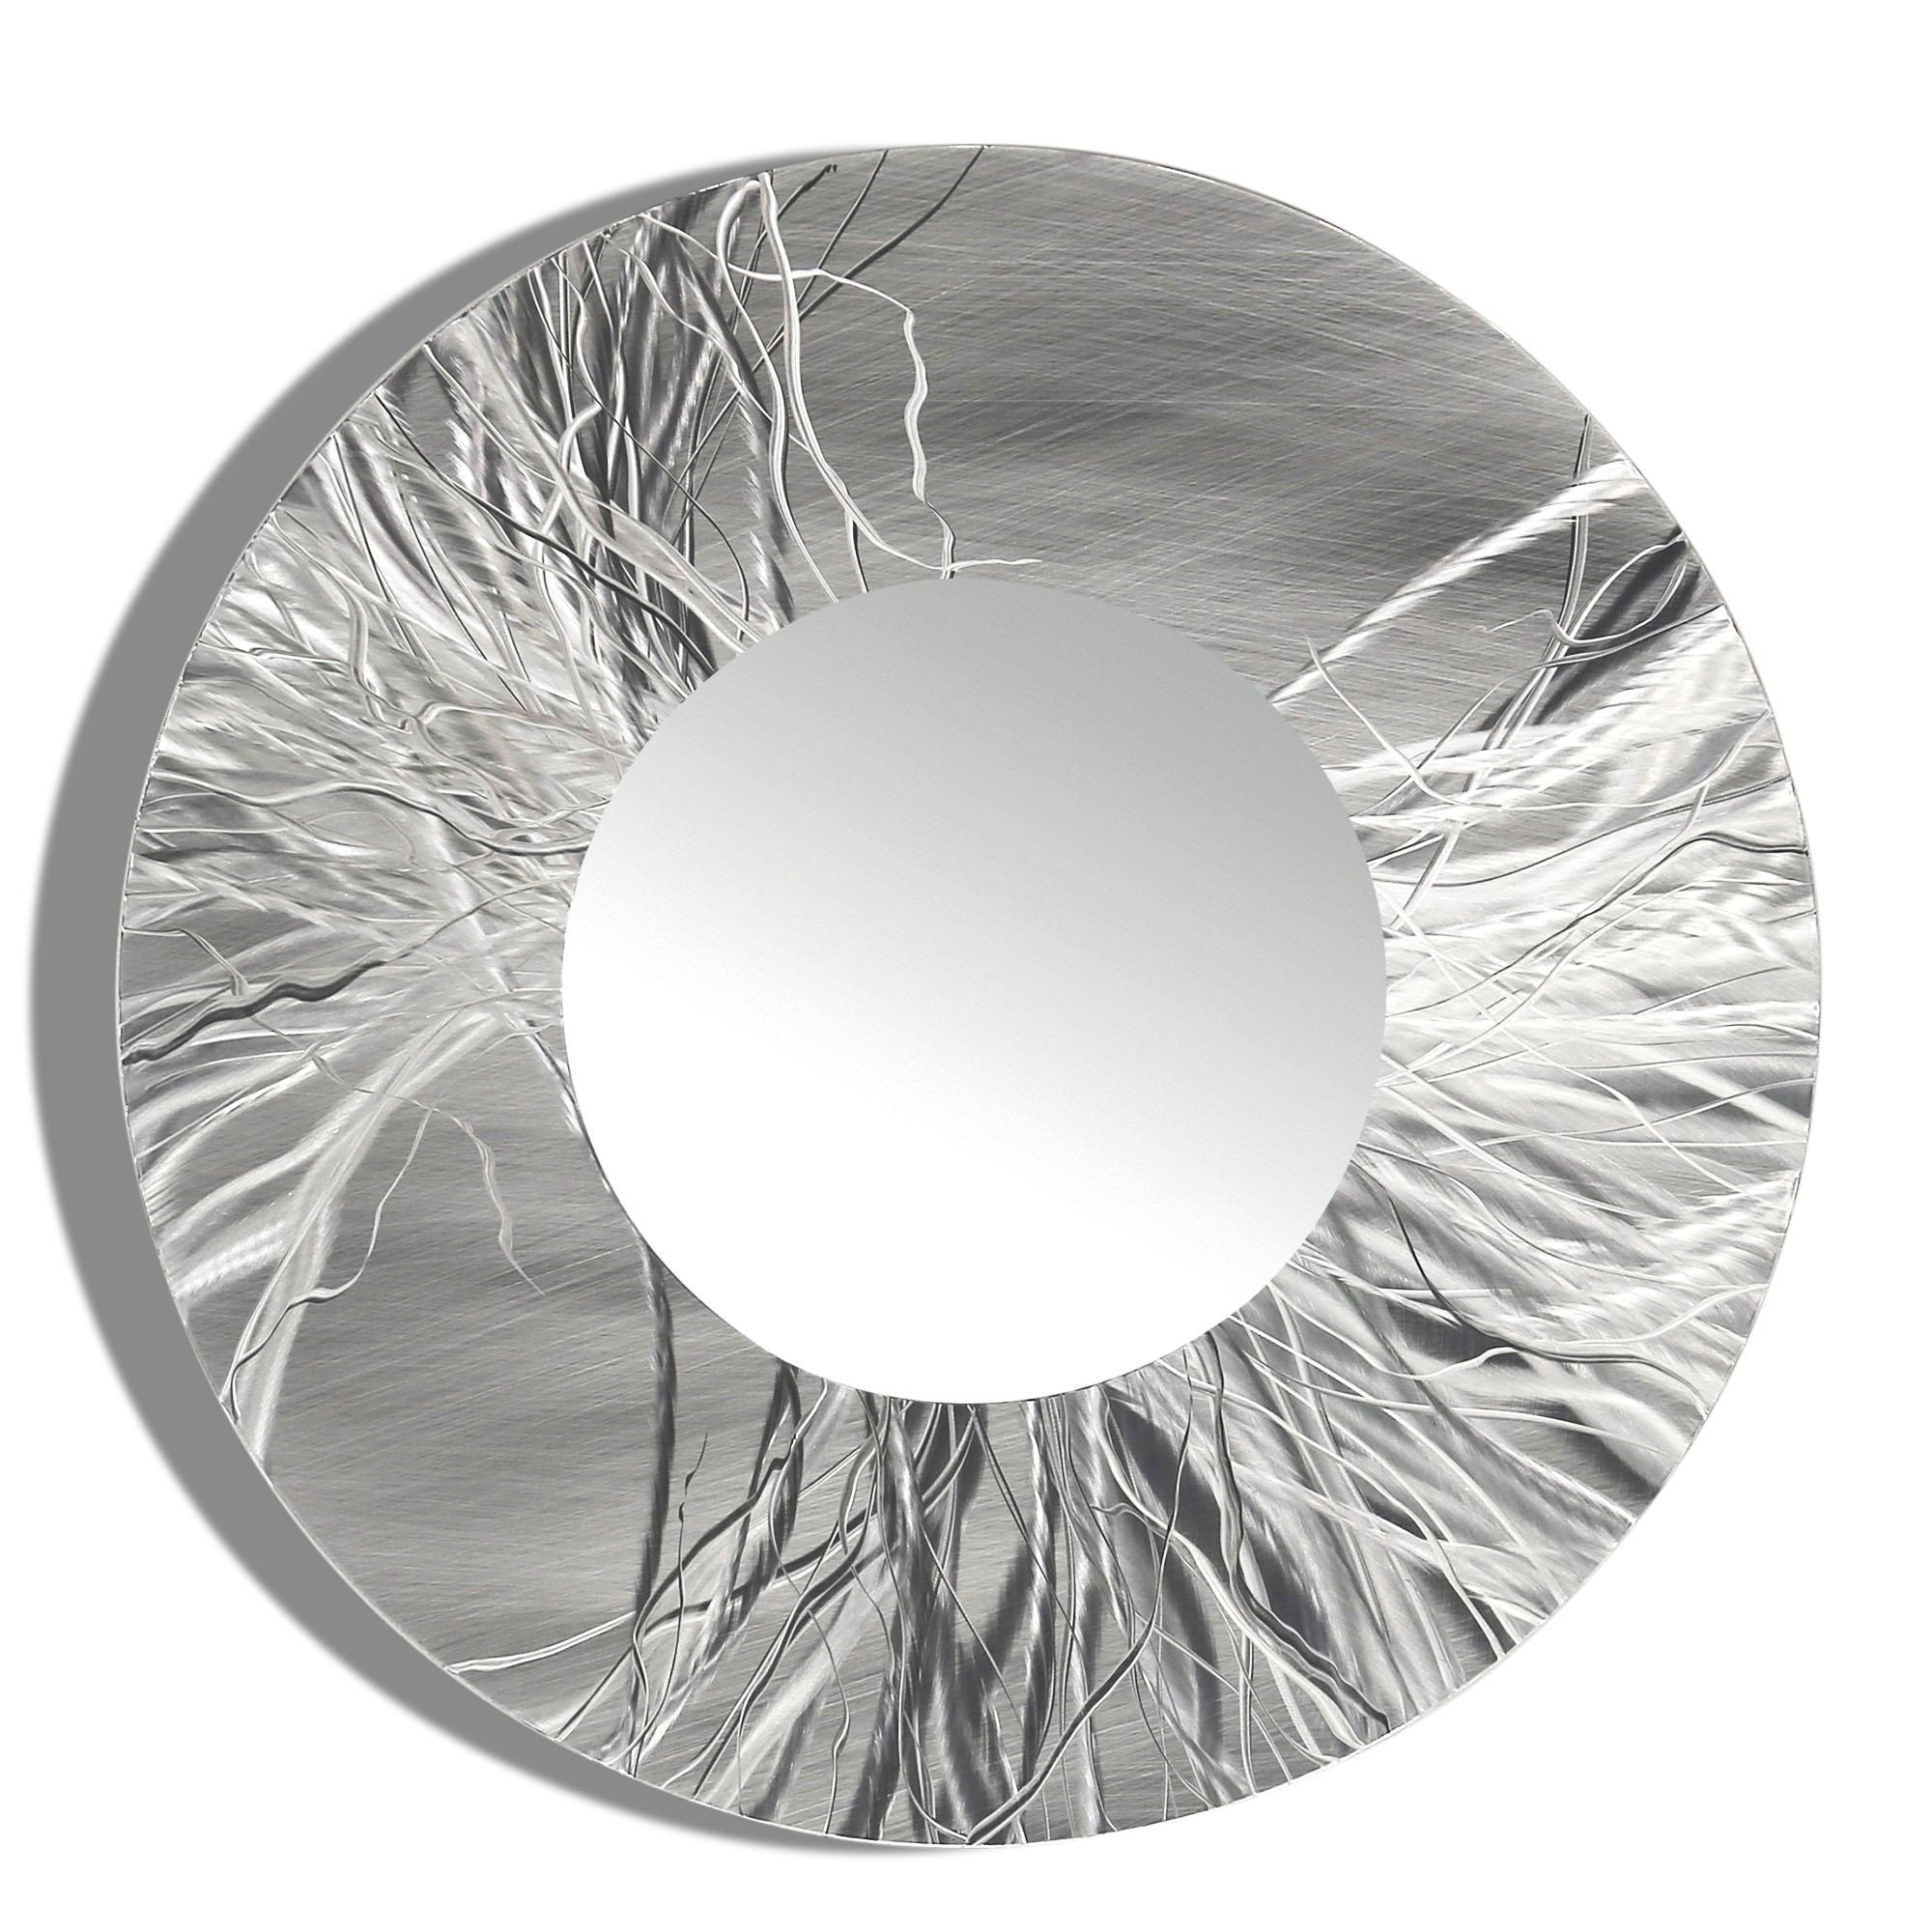 Mirror 104 – Round Silver Contemporary Metal Wall Art Round Mirror In Modern Silver Mirror (Image 12 of 20)